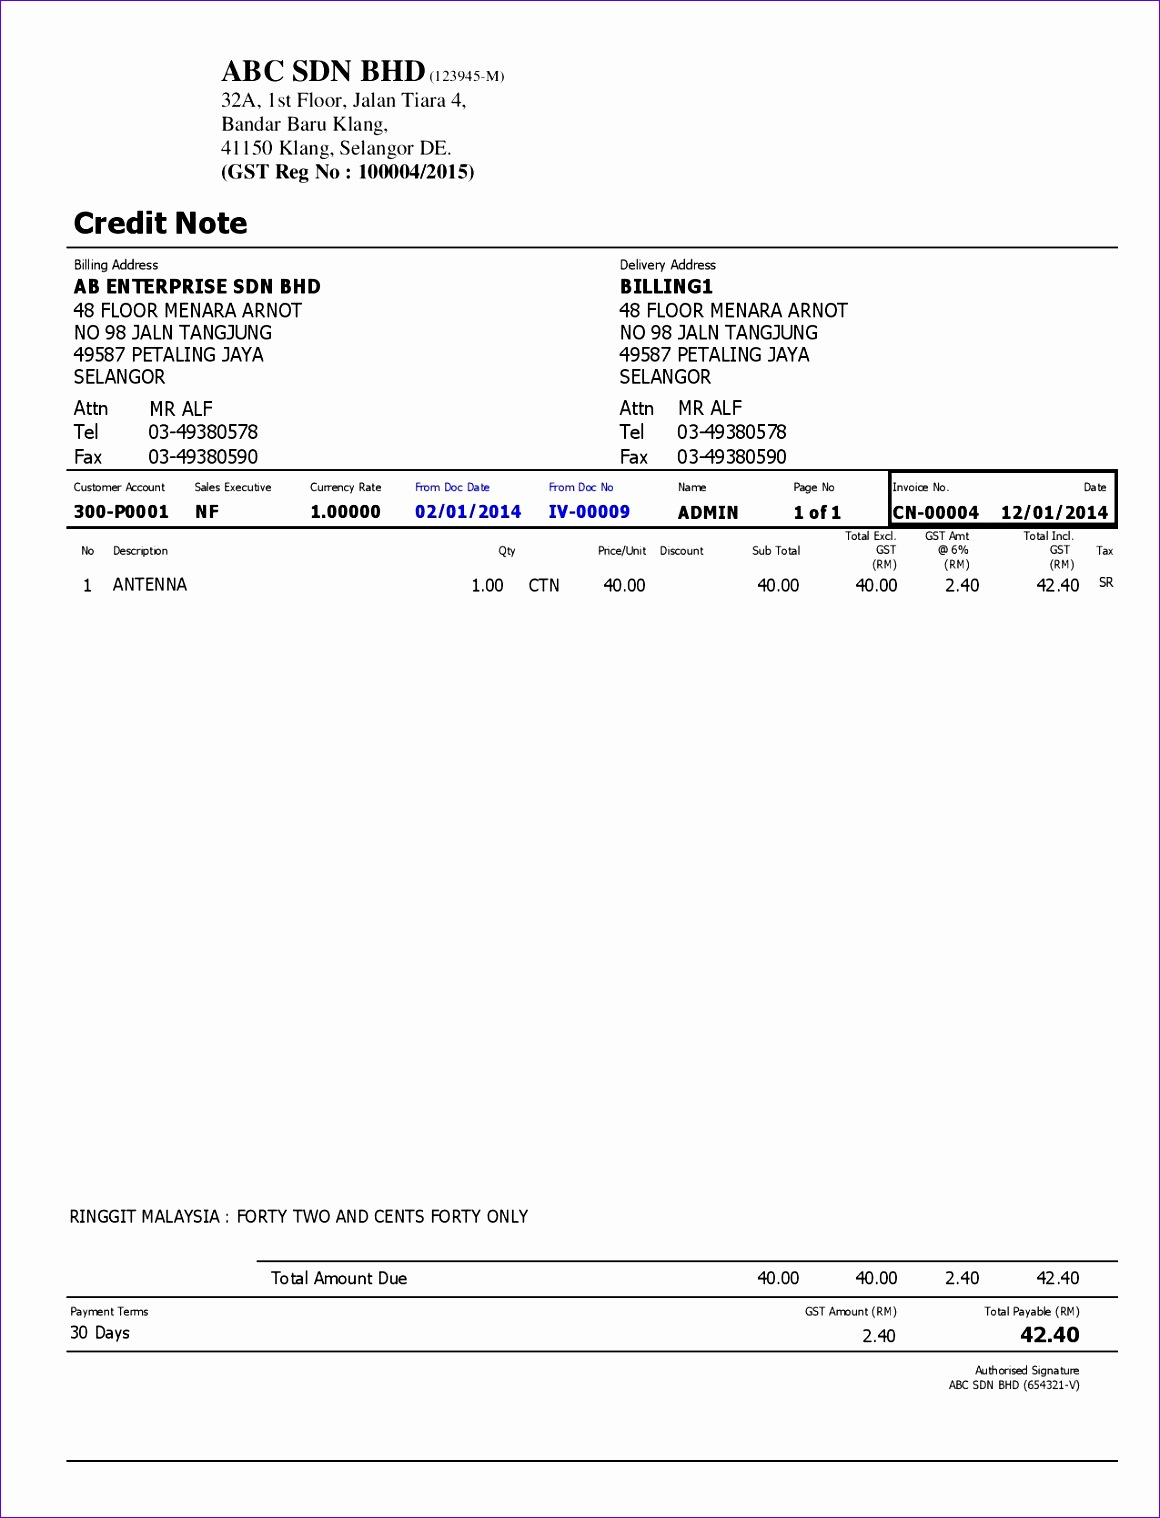 Microsoft Excel order form Template Arxcm Beautiful Simple Credit Note format Pacq